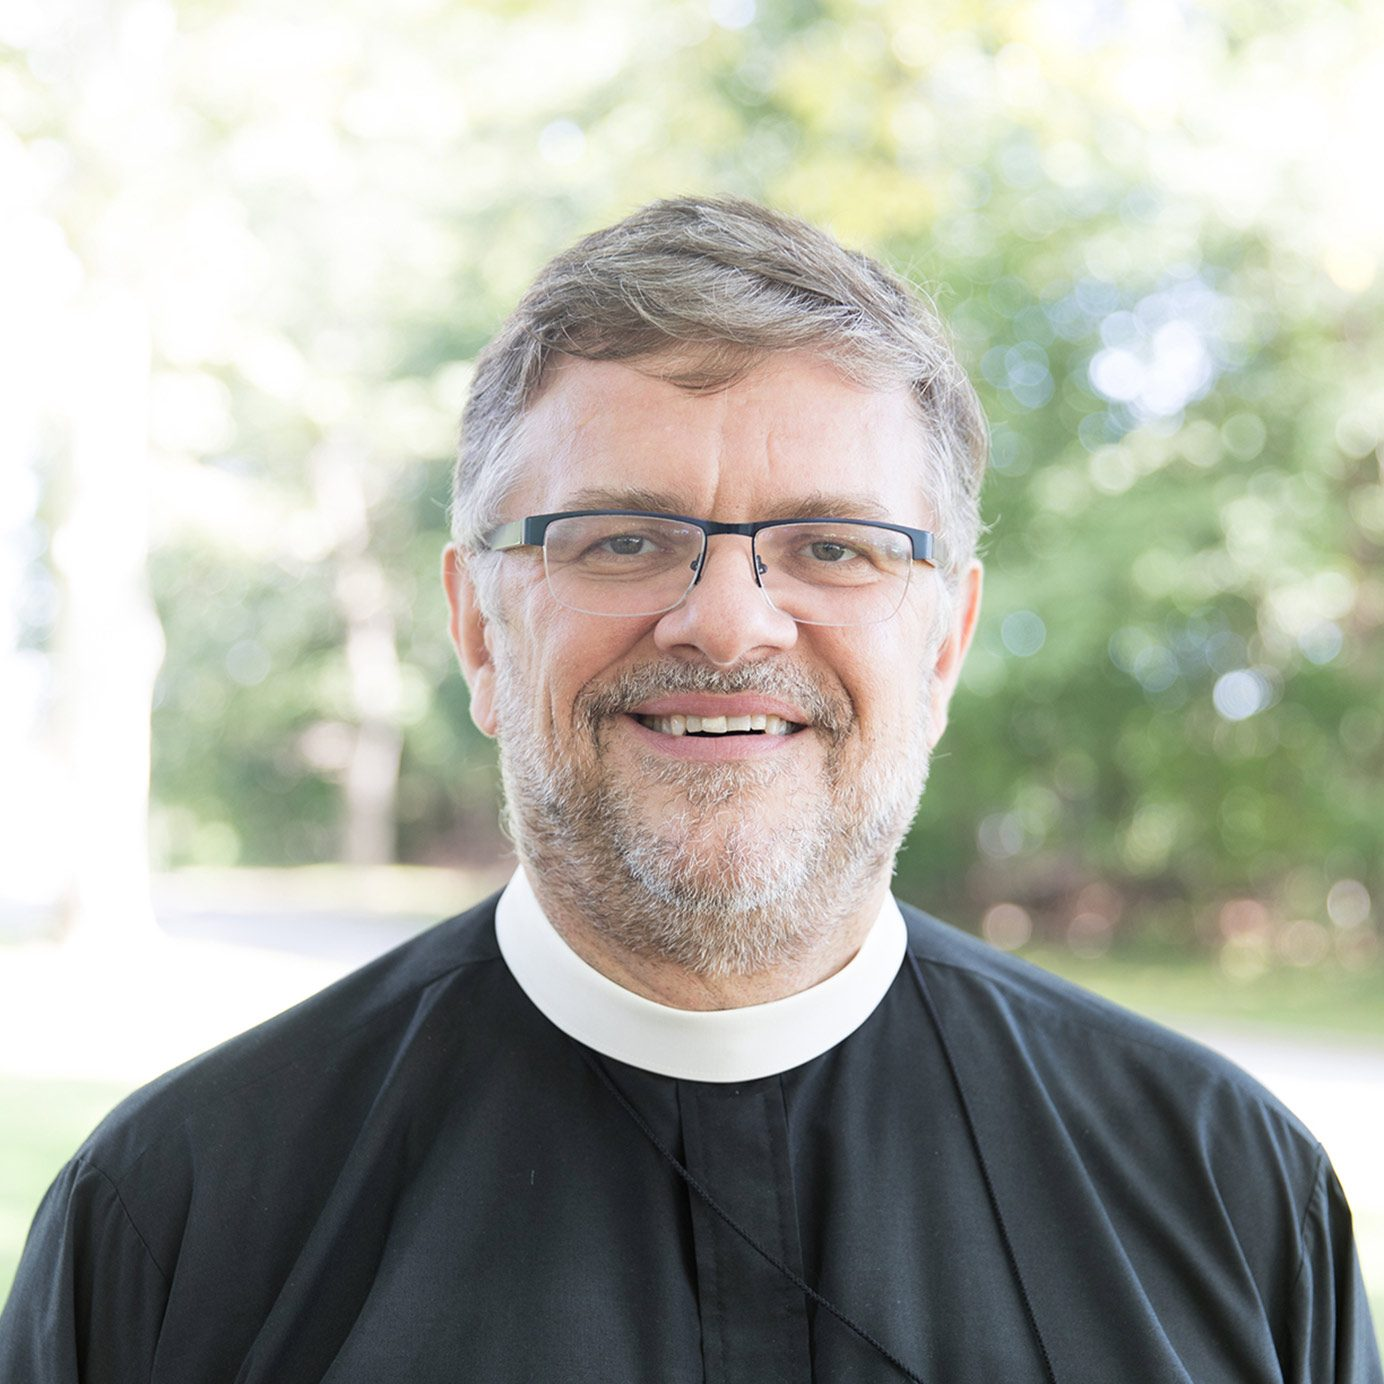 The Reverend Dr. Craig R. Higgins